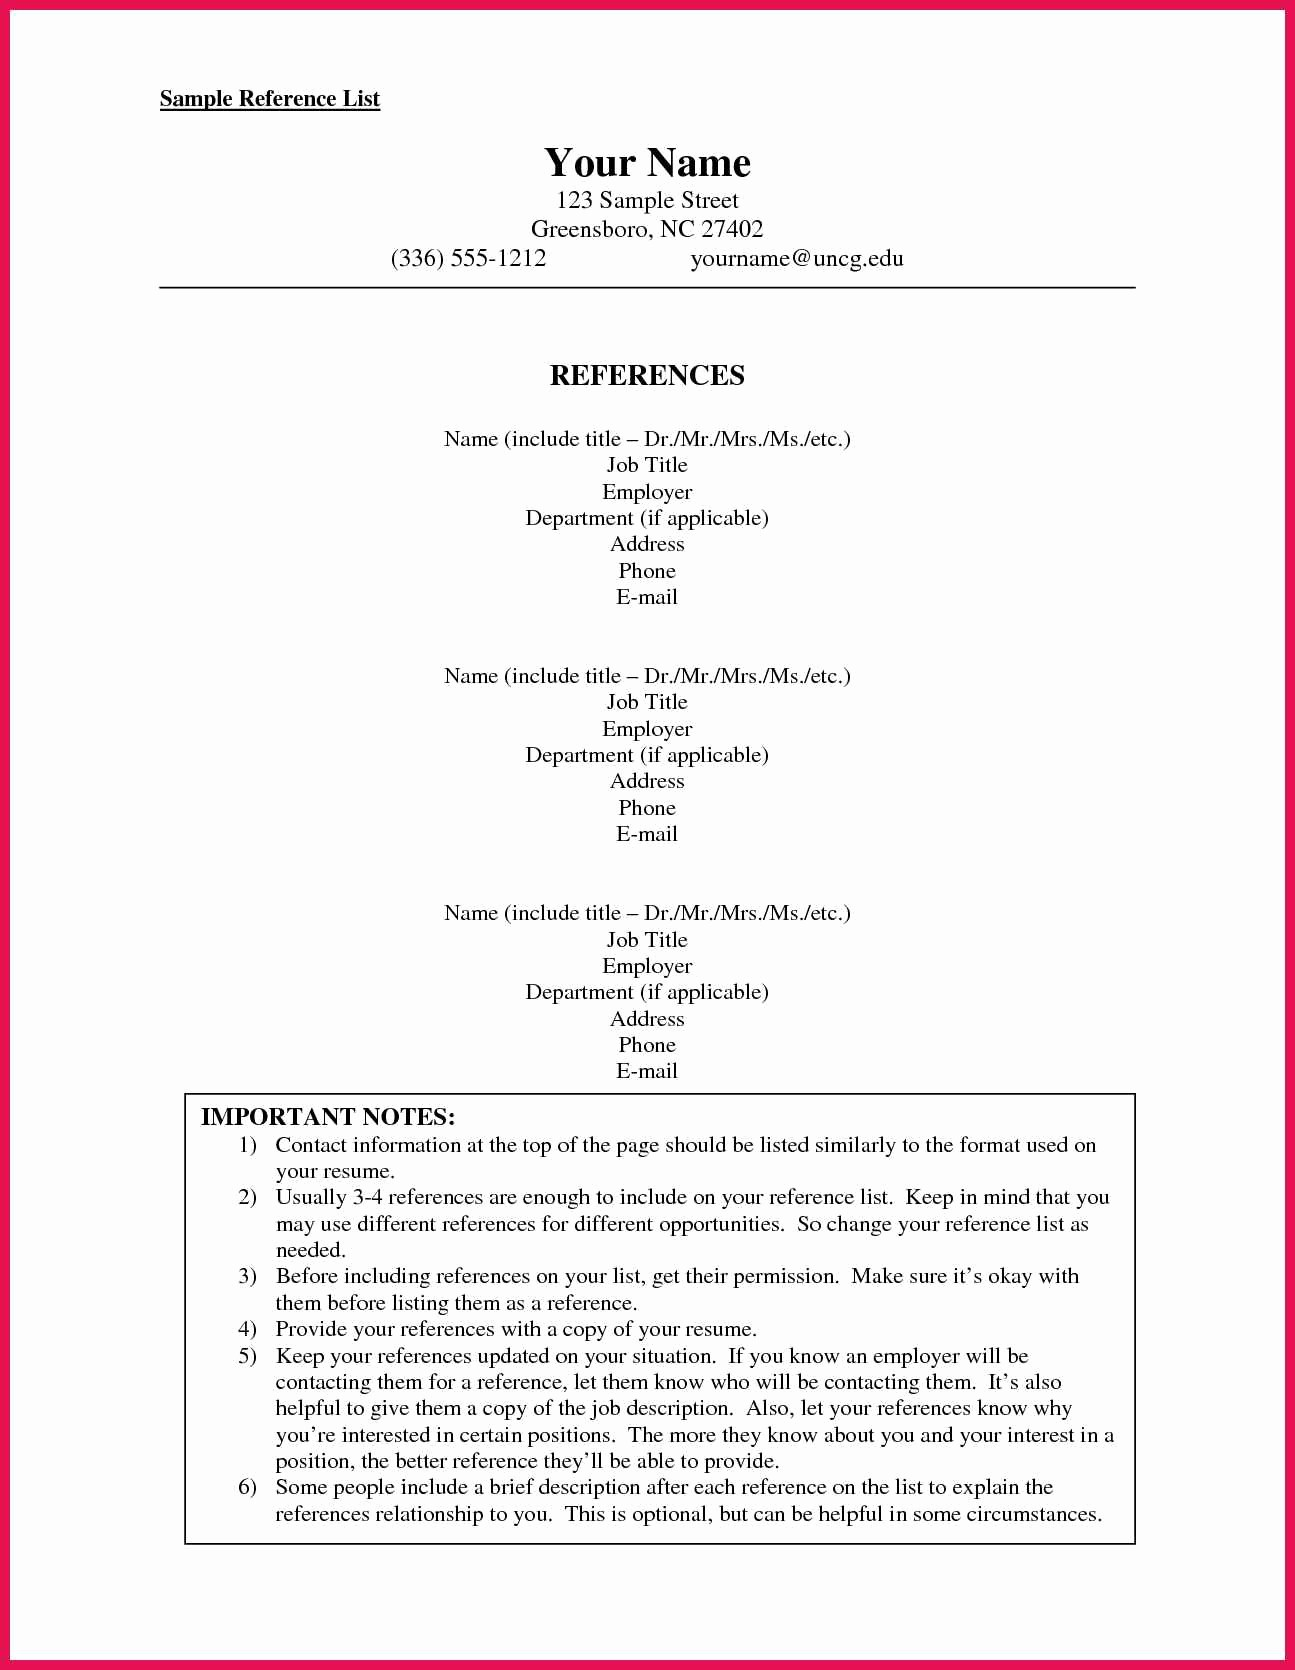 Sample Reference Sheet for Resume Fresh How to format A Reference List